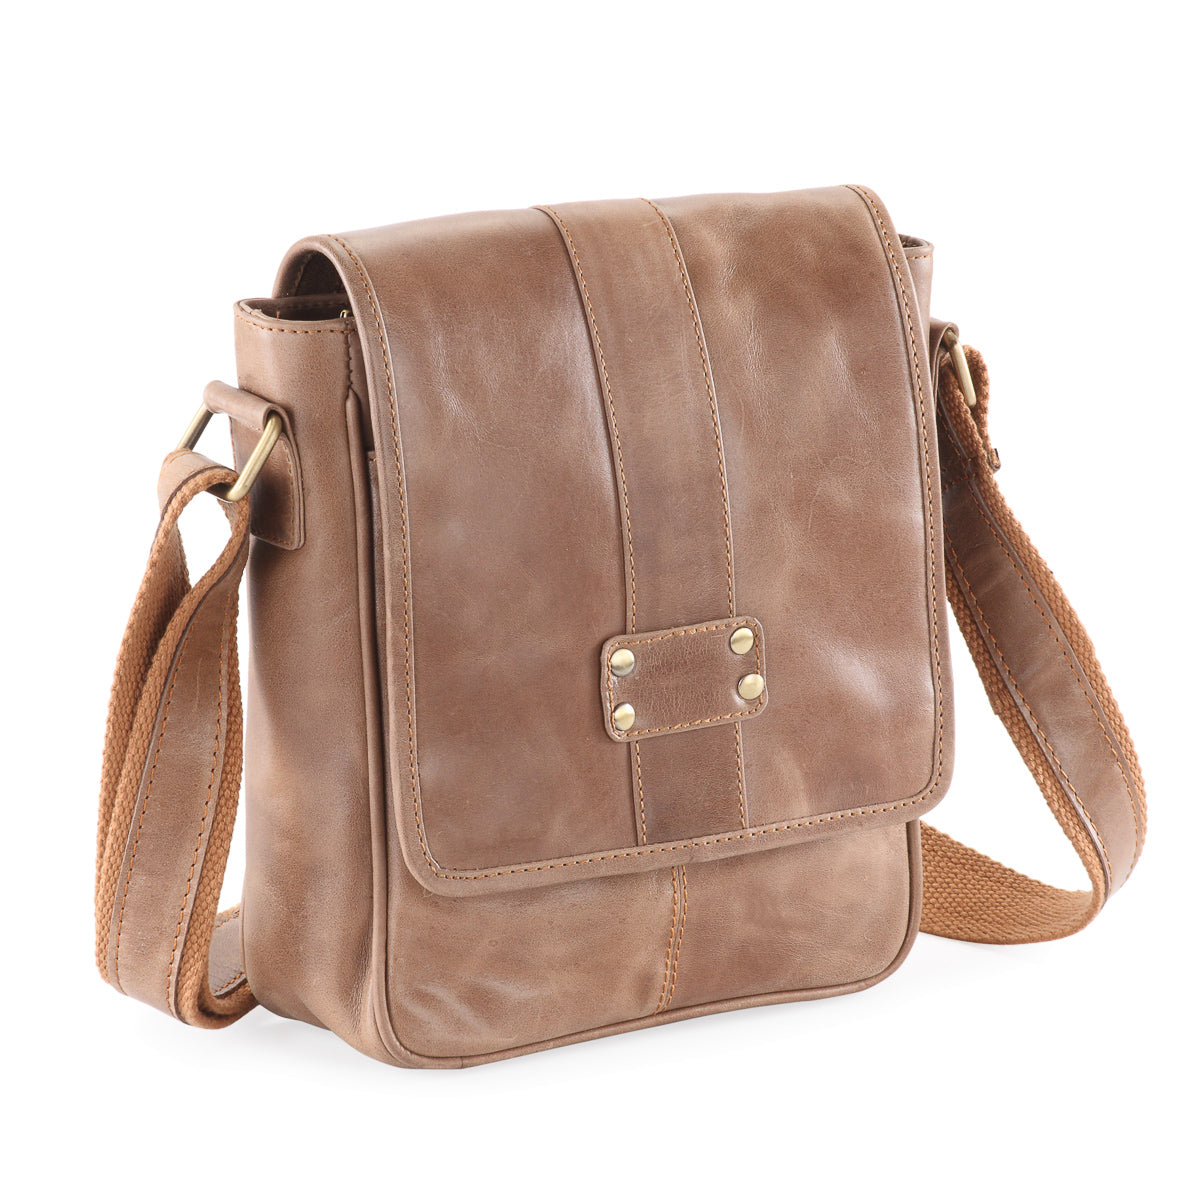 Frango distressed hunter messenger / cross body shoulder bag #UM48